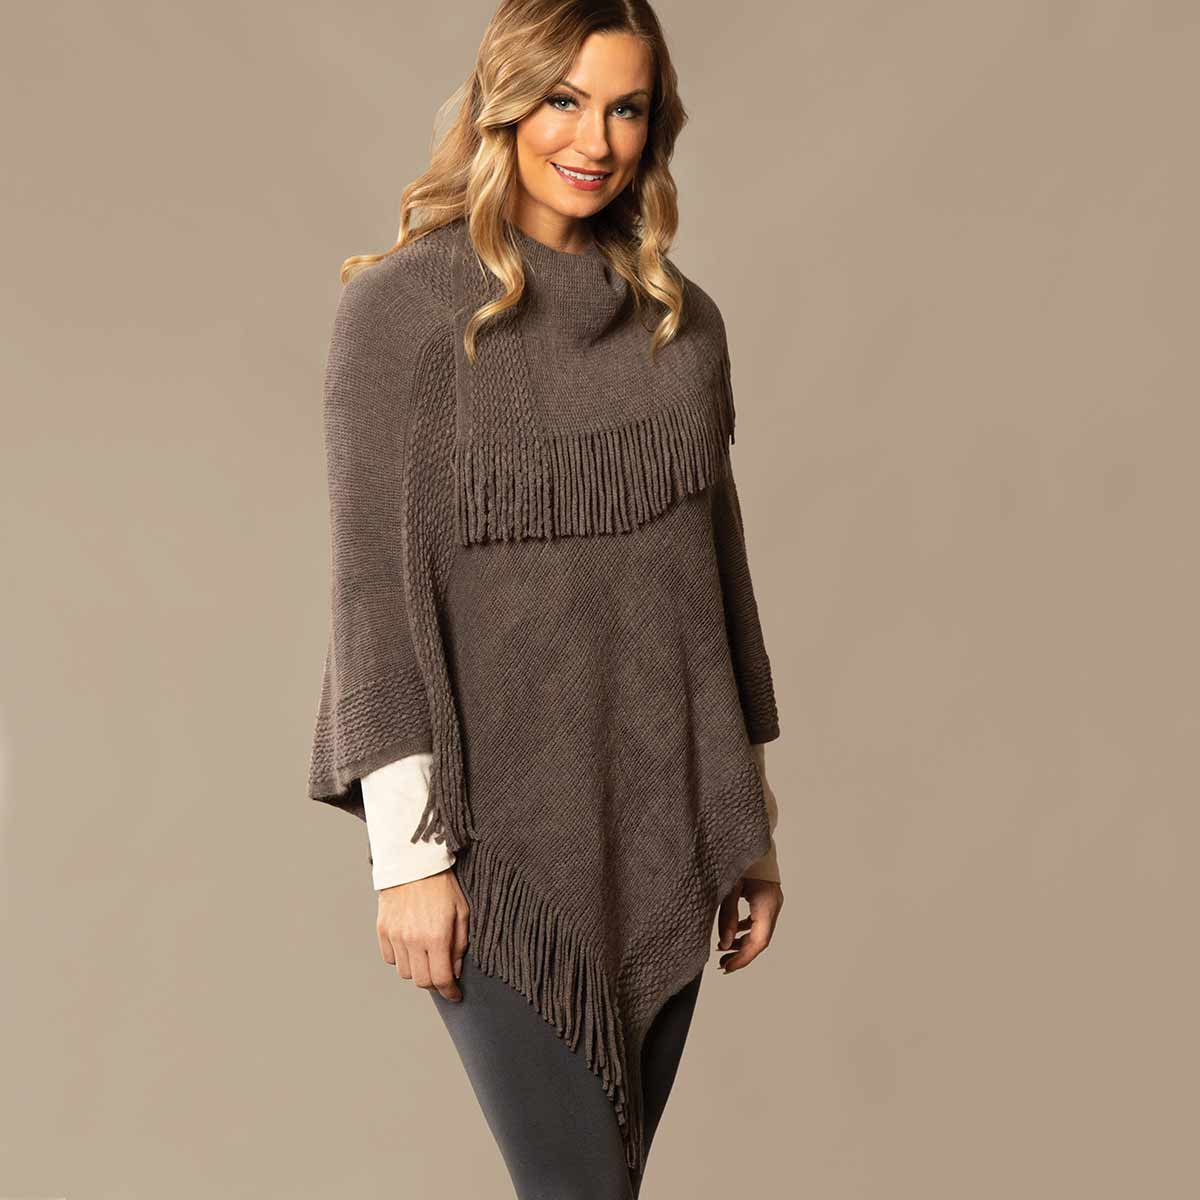 Dark Grey Knit Poncho with Collar and Fringe